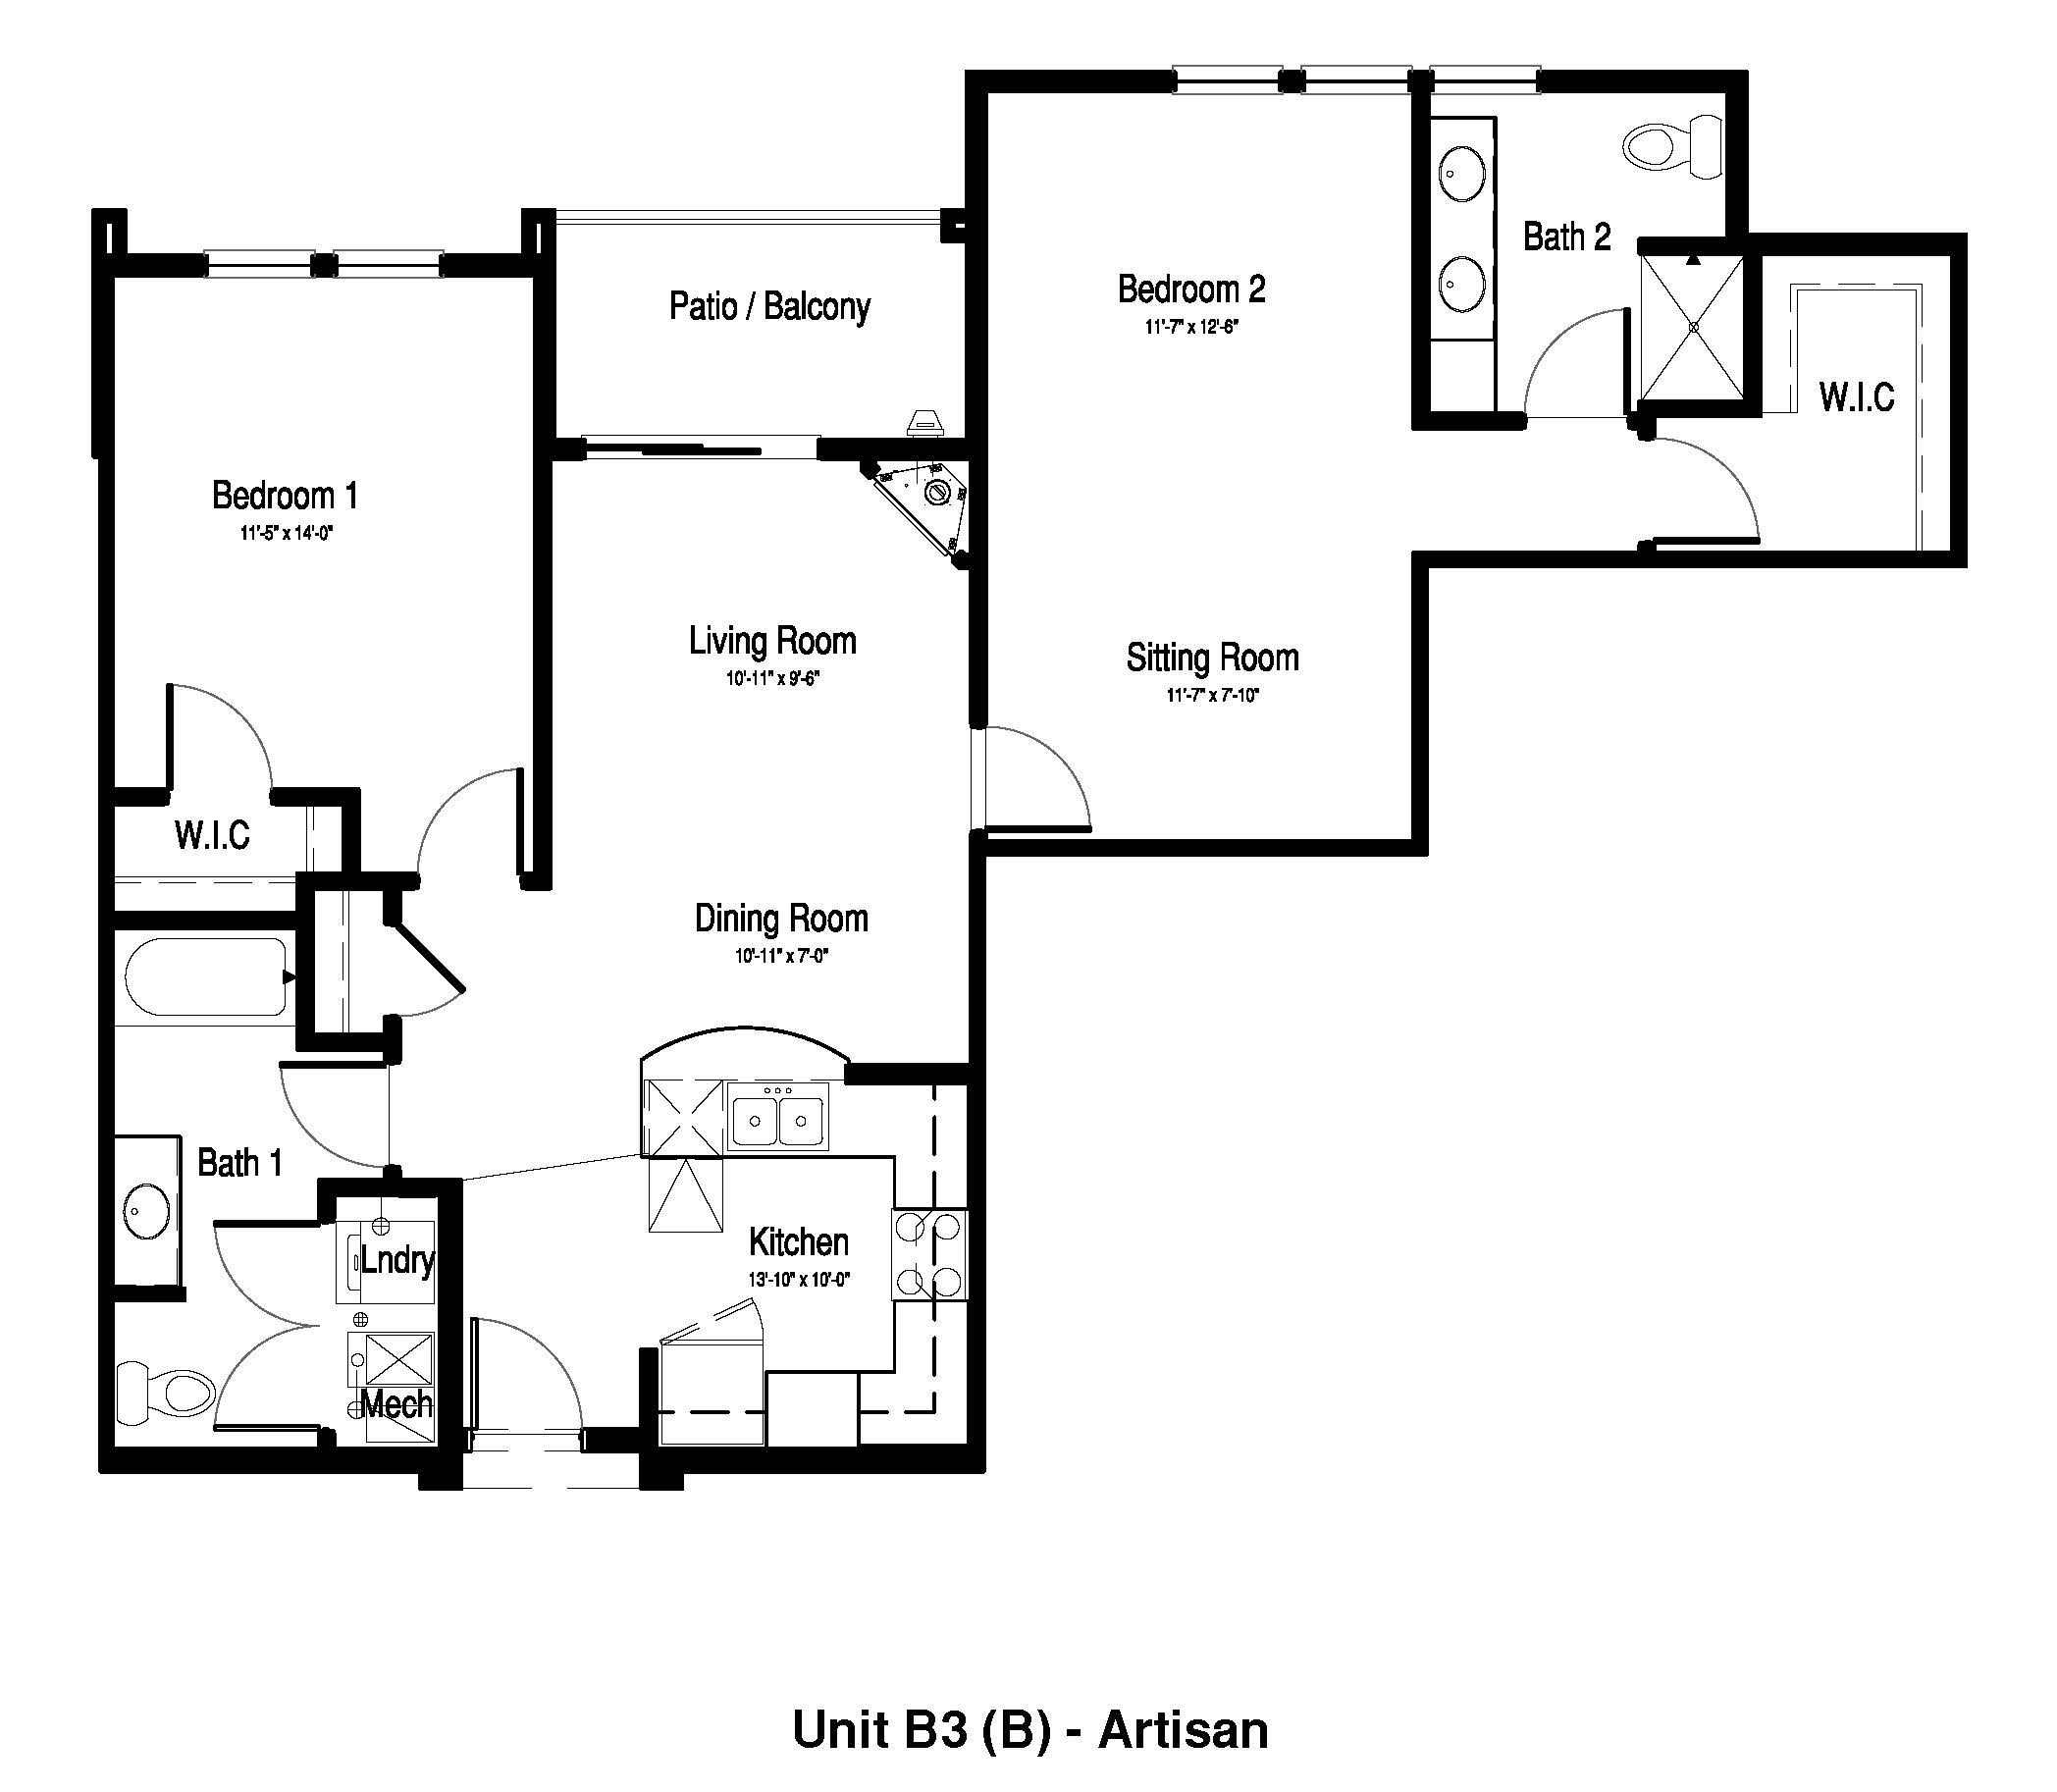 Two Bedroom, Two Bath + Sitting Room - 1,163 Sq. Ft. - The Artisan at Georgetown Square